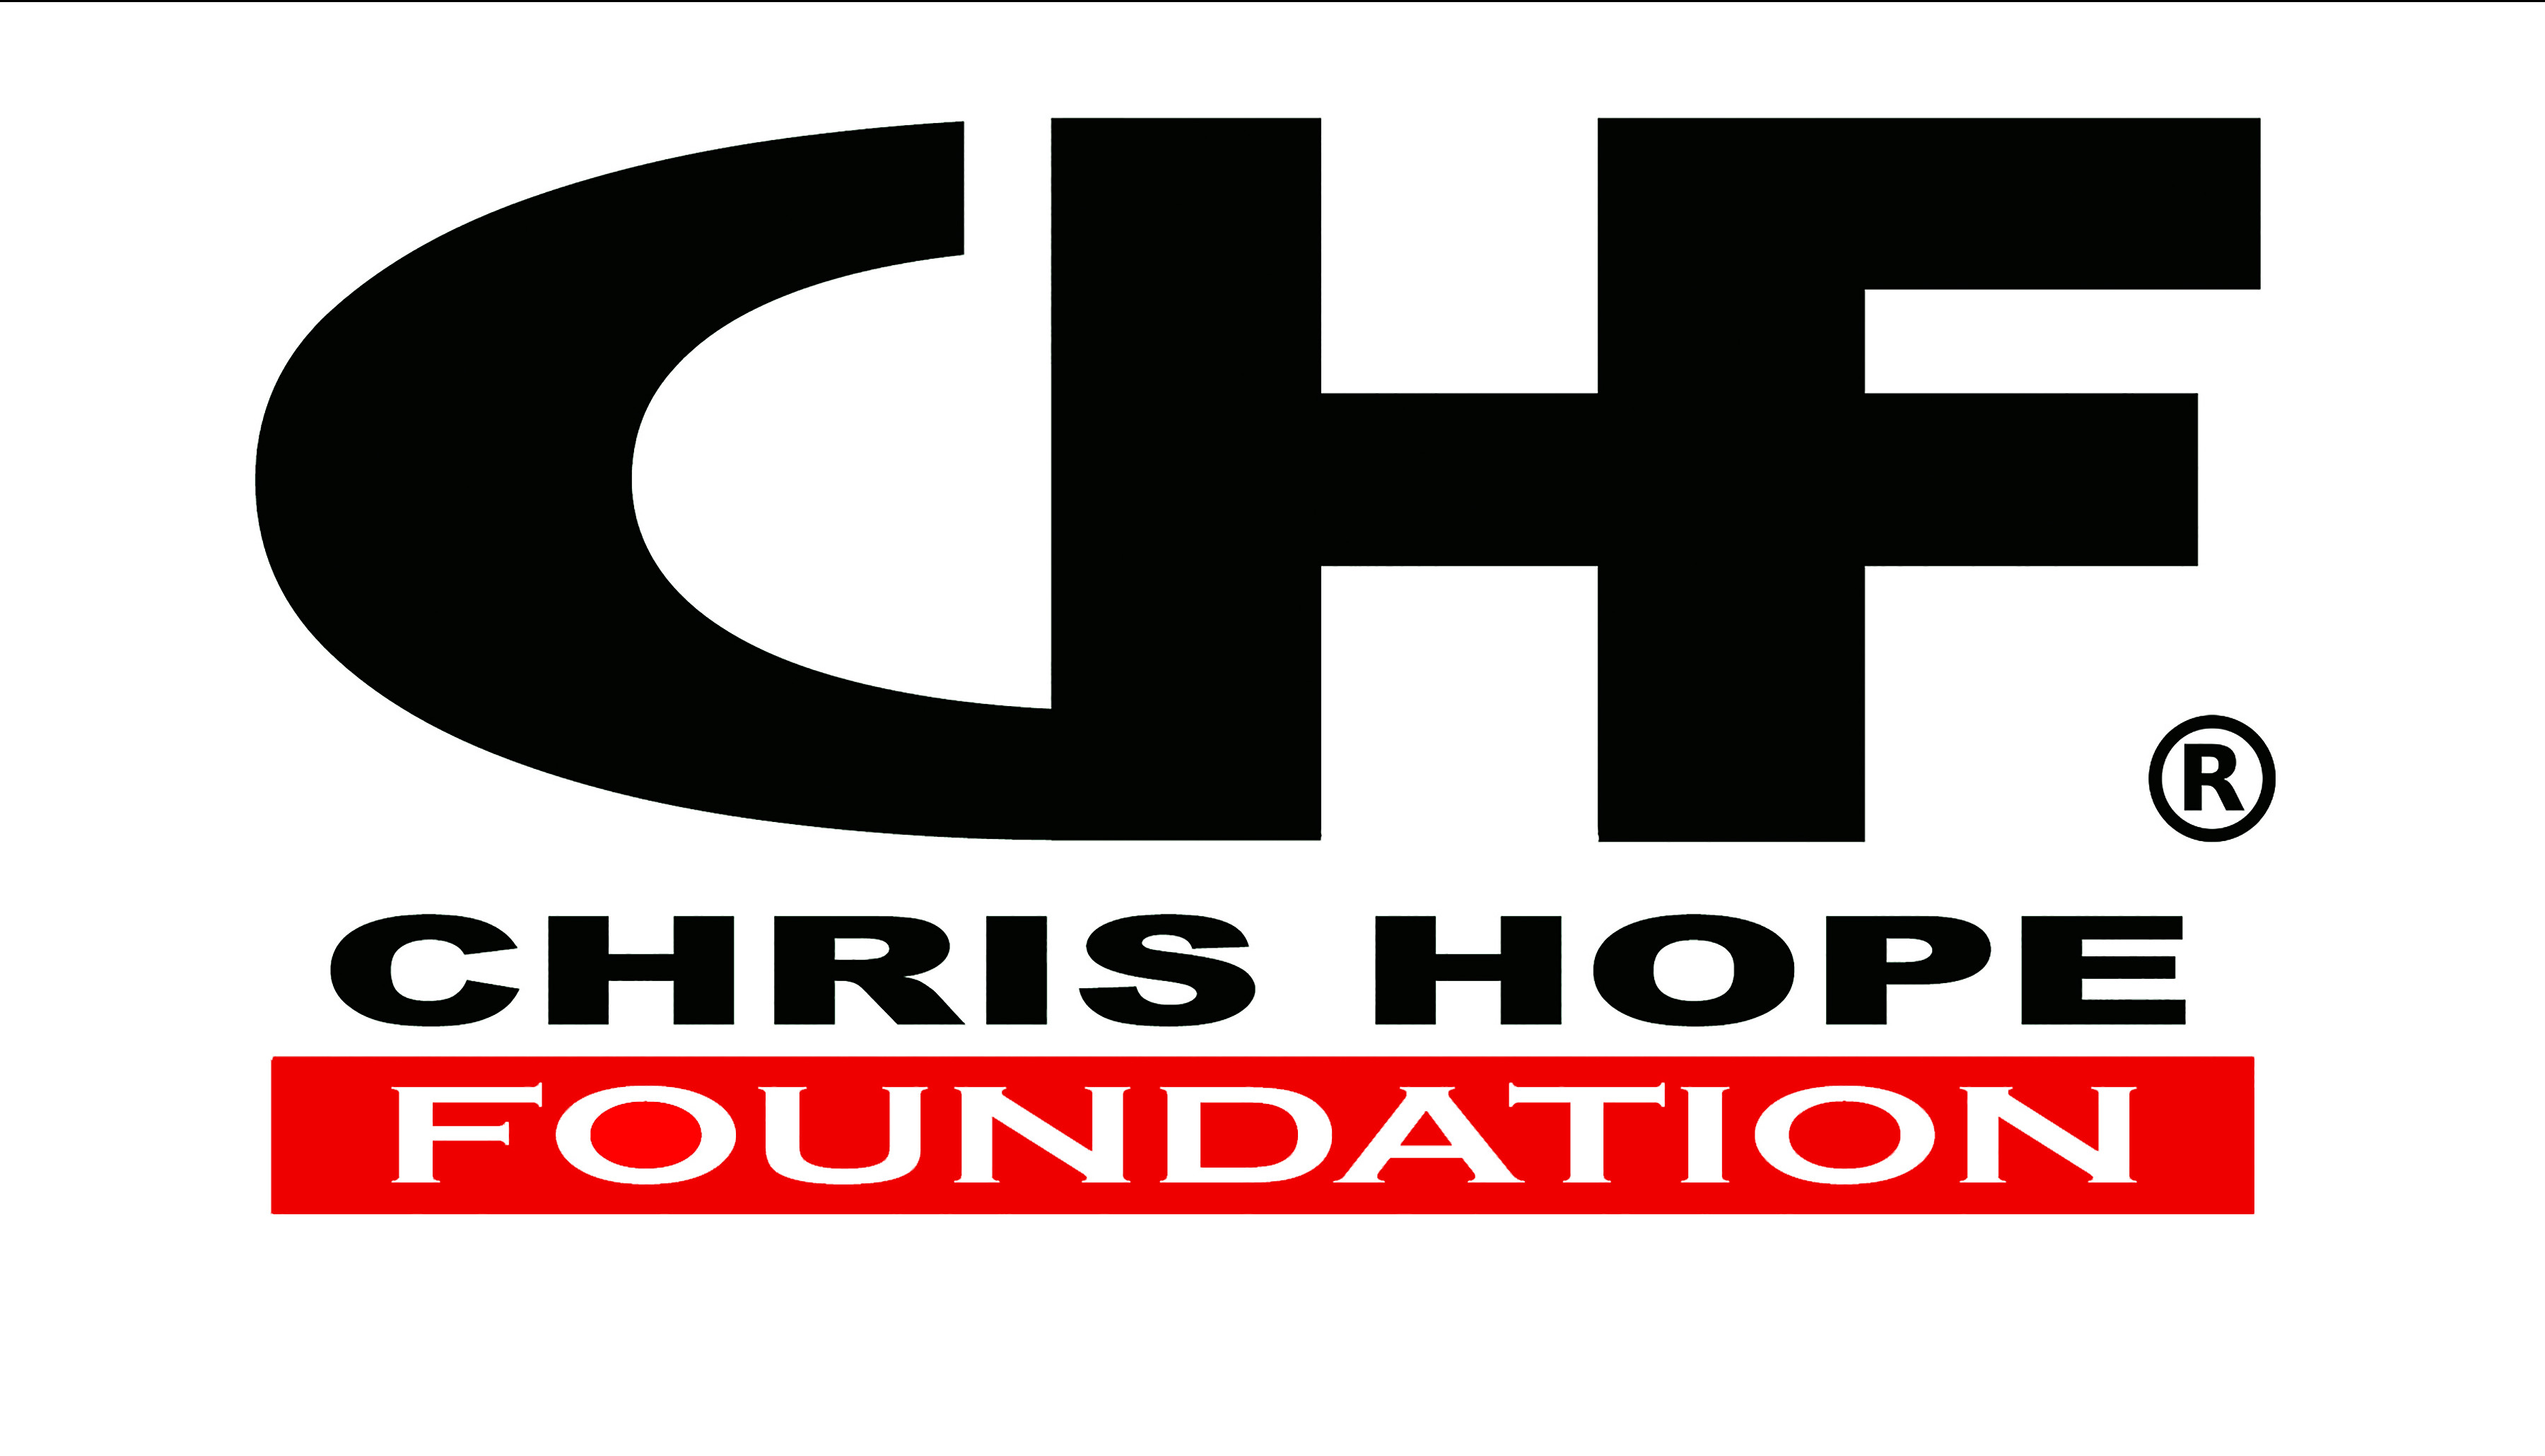 Chris Hope Foundation